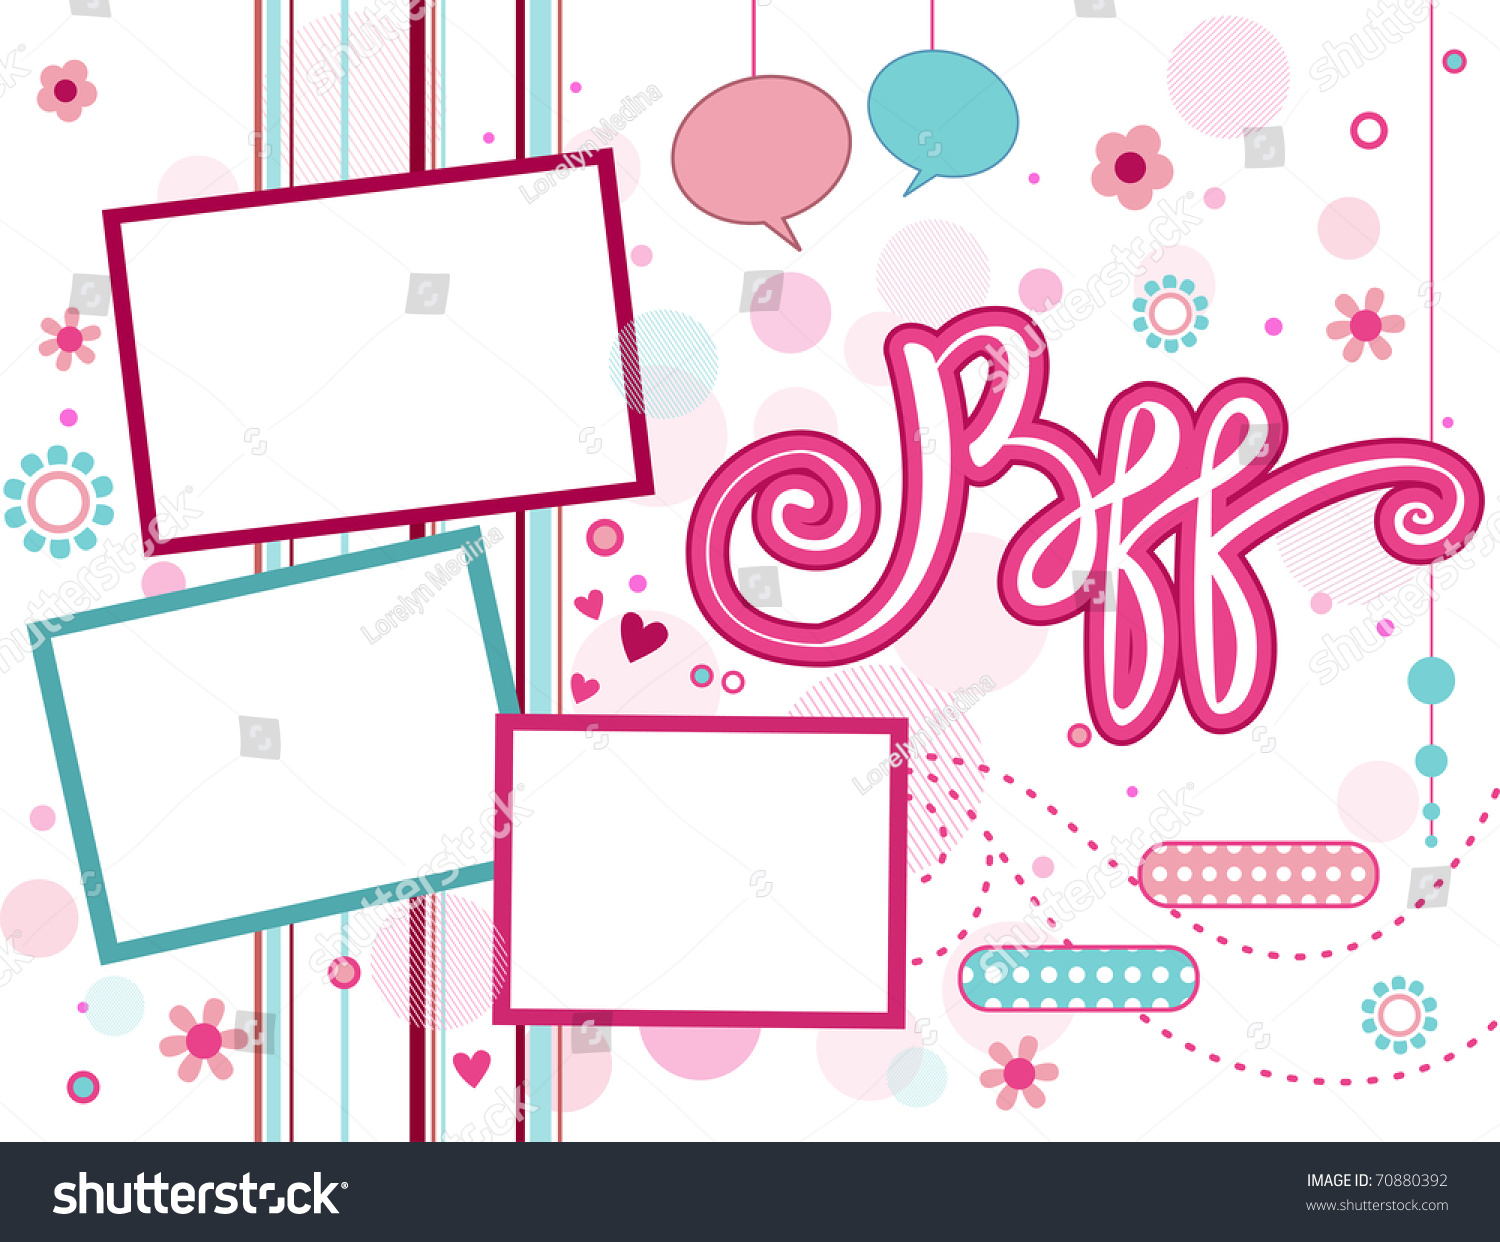 Illustration Frame Featuring Acronym BFF Stock Vector (2018 ...